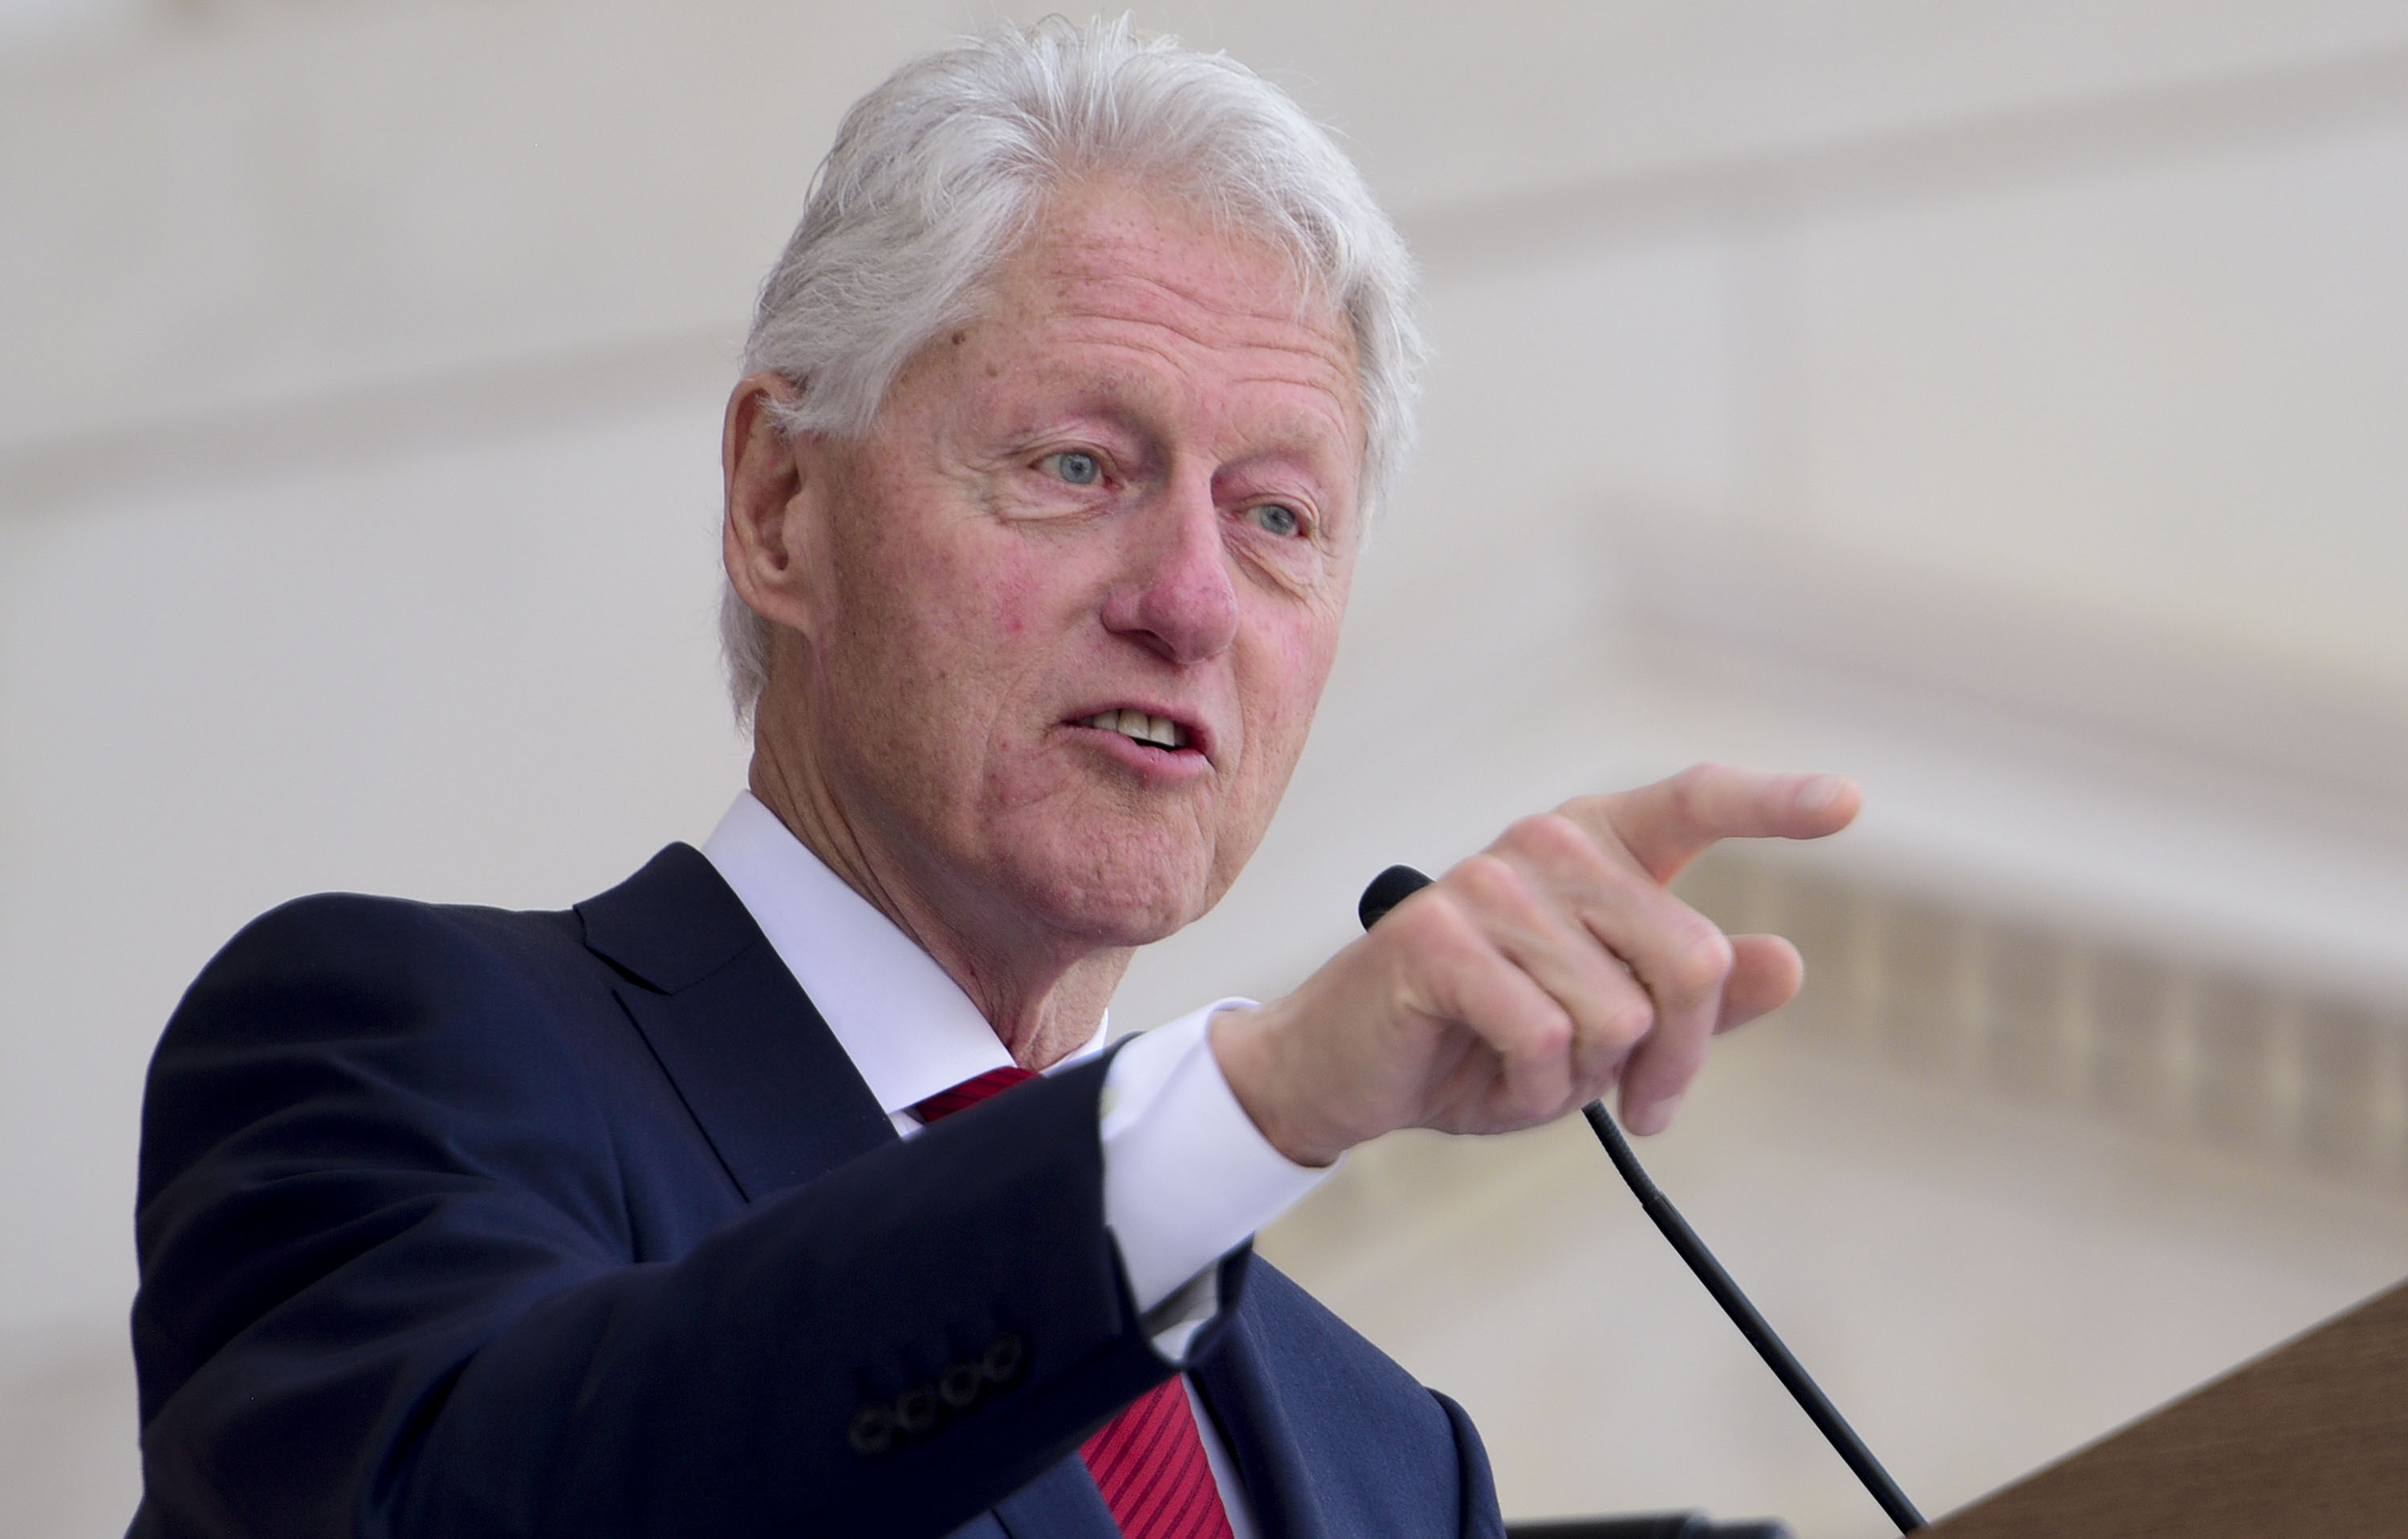 Former President Bill Clinton speaks during a Remembrance and Celebration of the Life & Enduring Legacy of Robert F. Kennedy event taking place at Arlington National Cemetery on June 6, 2018 in Arlington, Virginia.